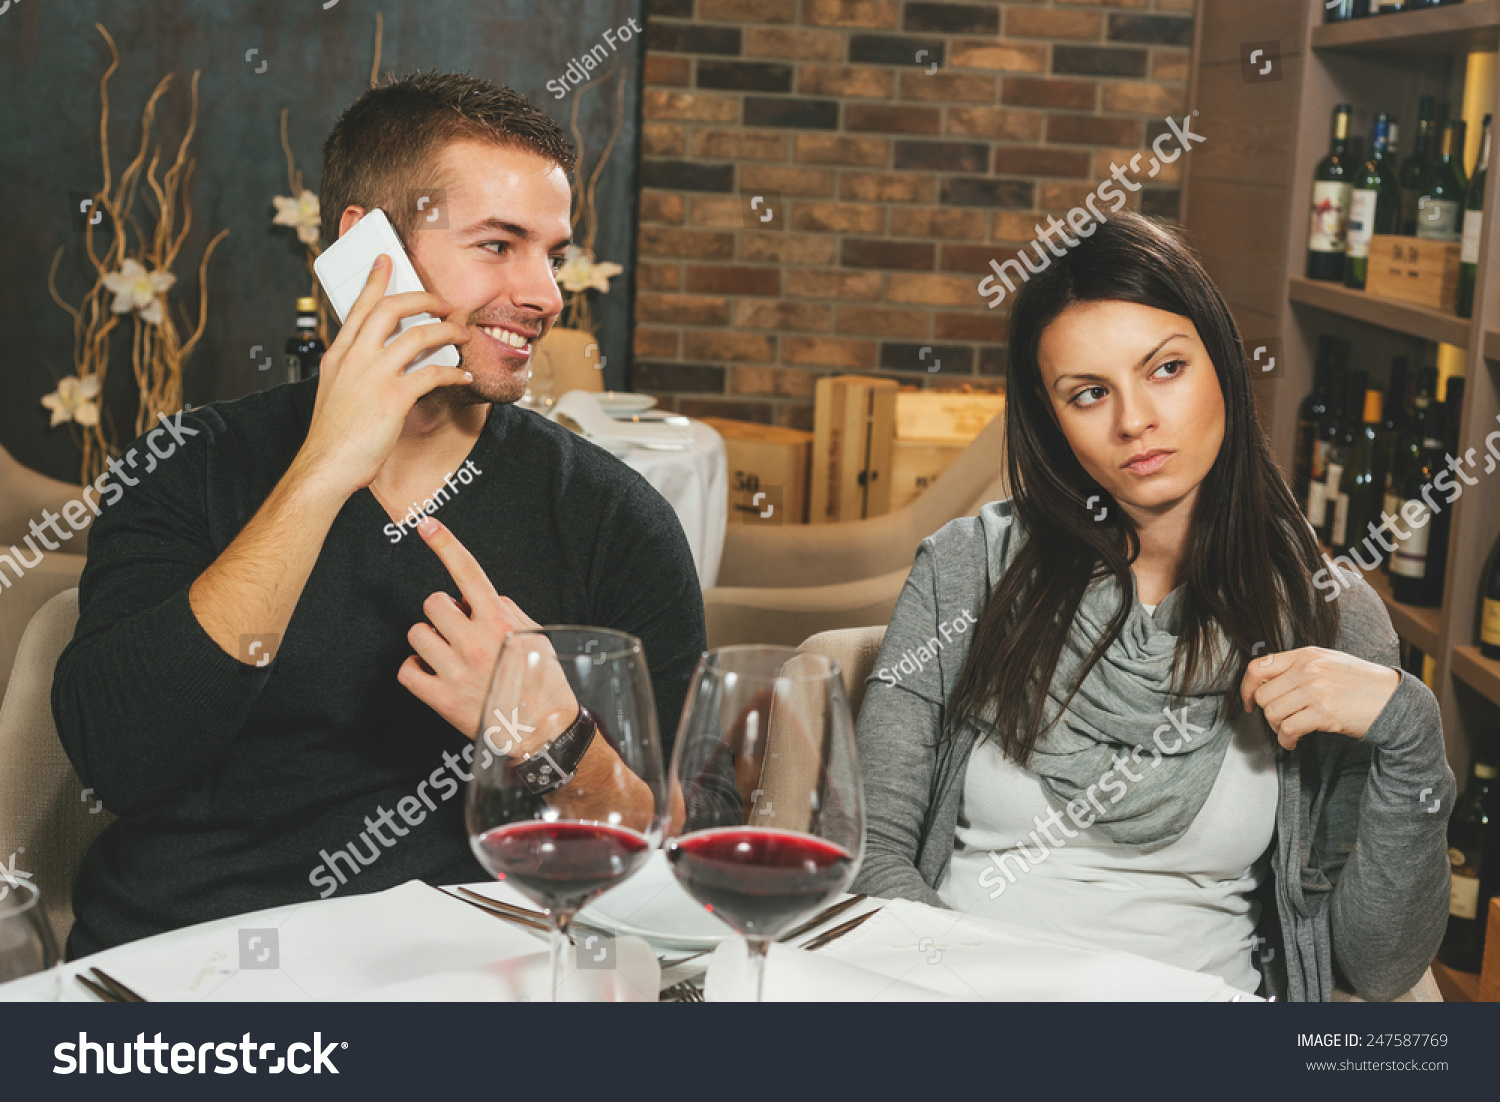 Talking on the phone while dating